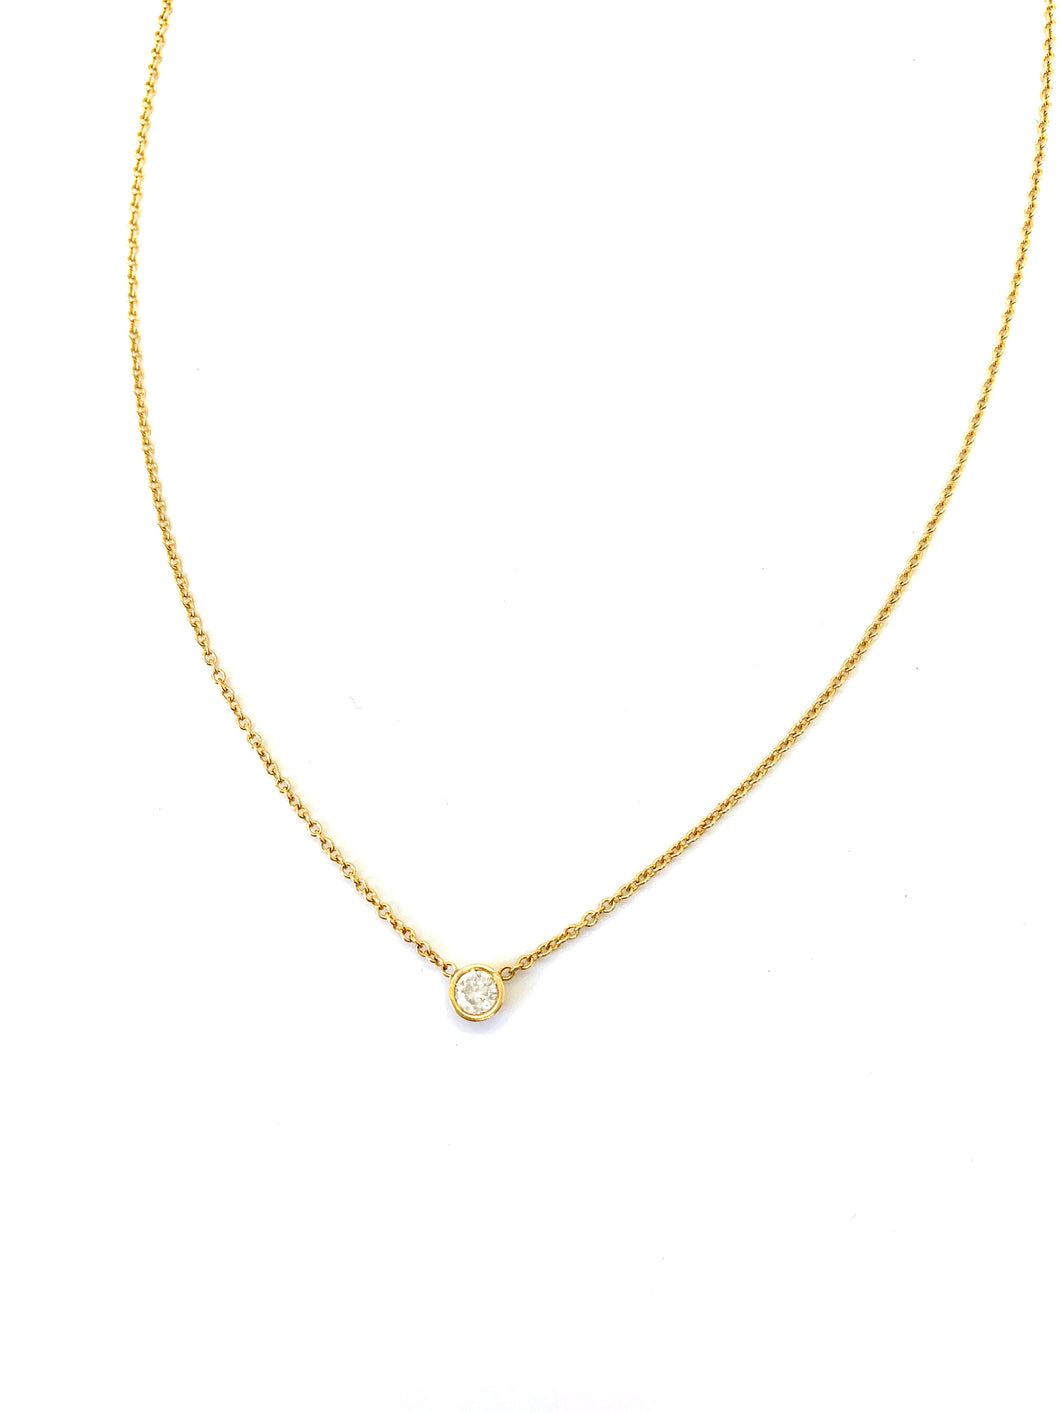 Materials include a 16-inch 14k yellow gold chain w/ a 3mm brilliant diamond